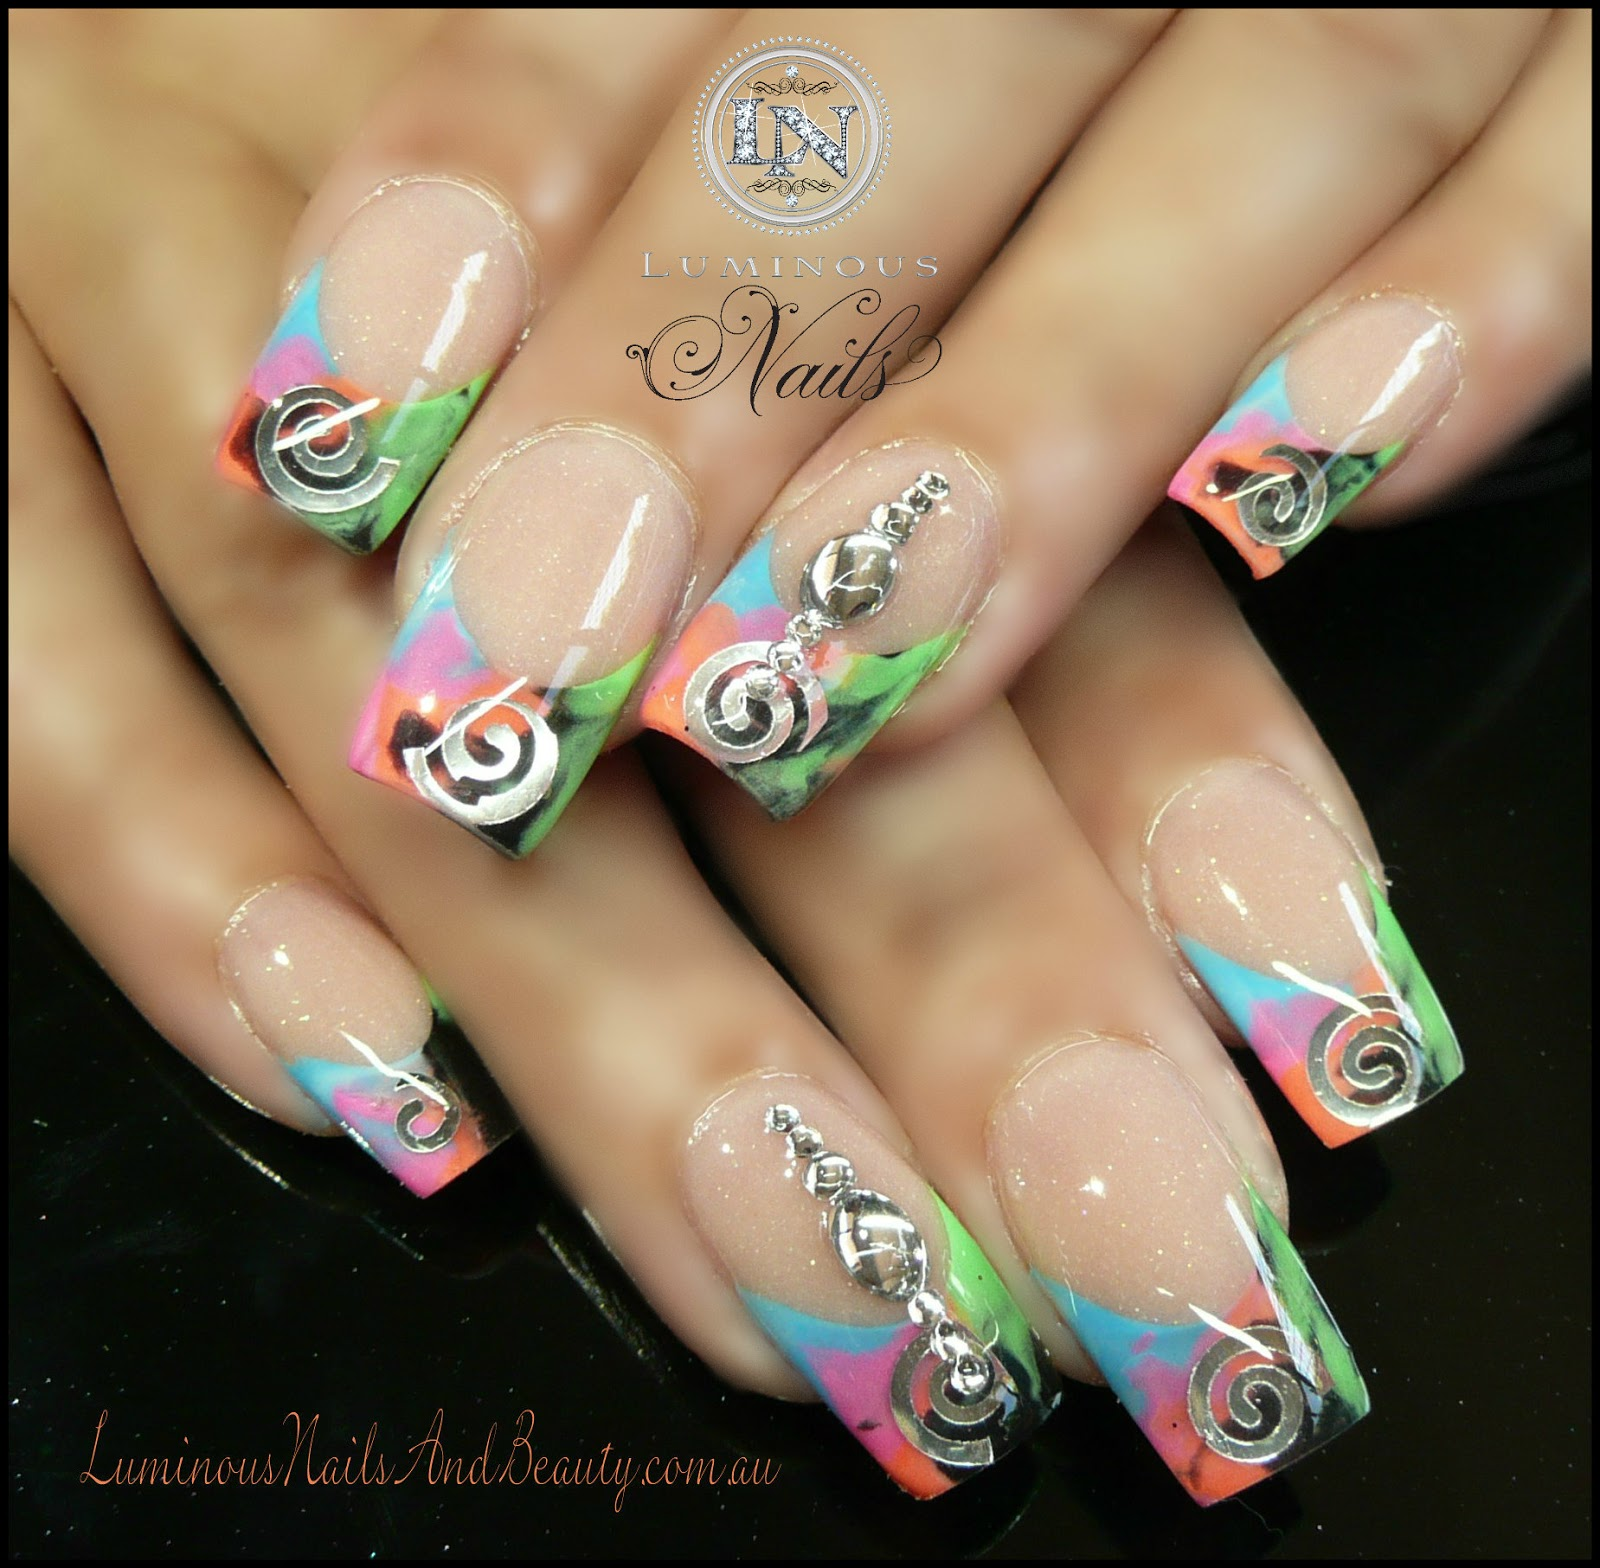 The Astounding Acrylic nails designs Pics